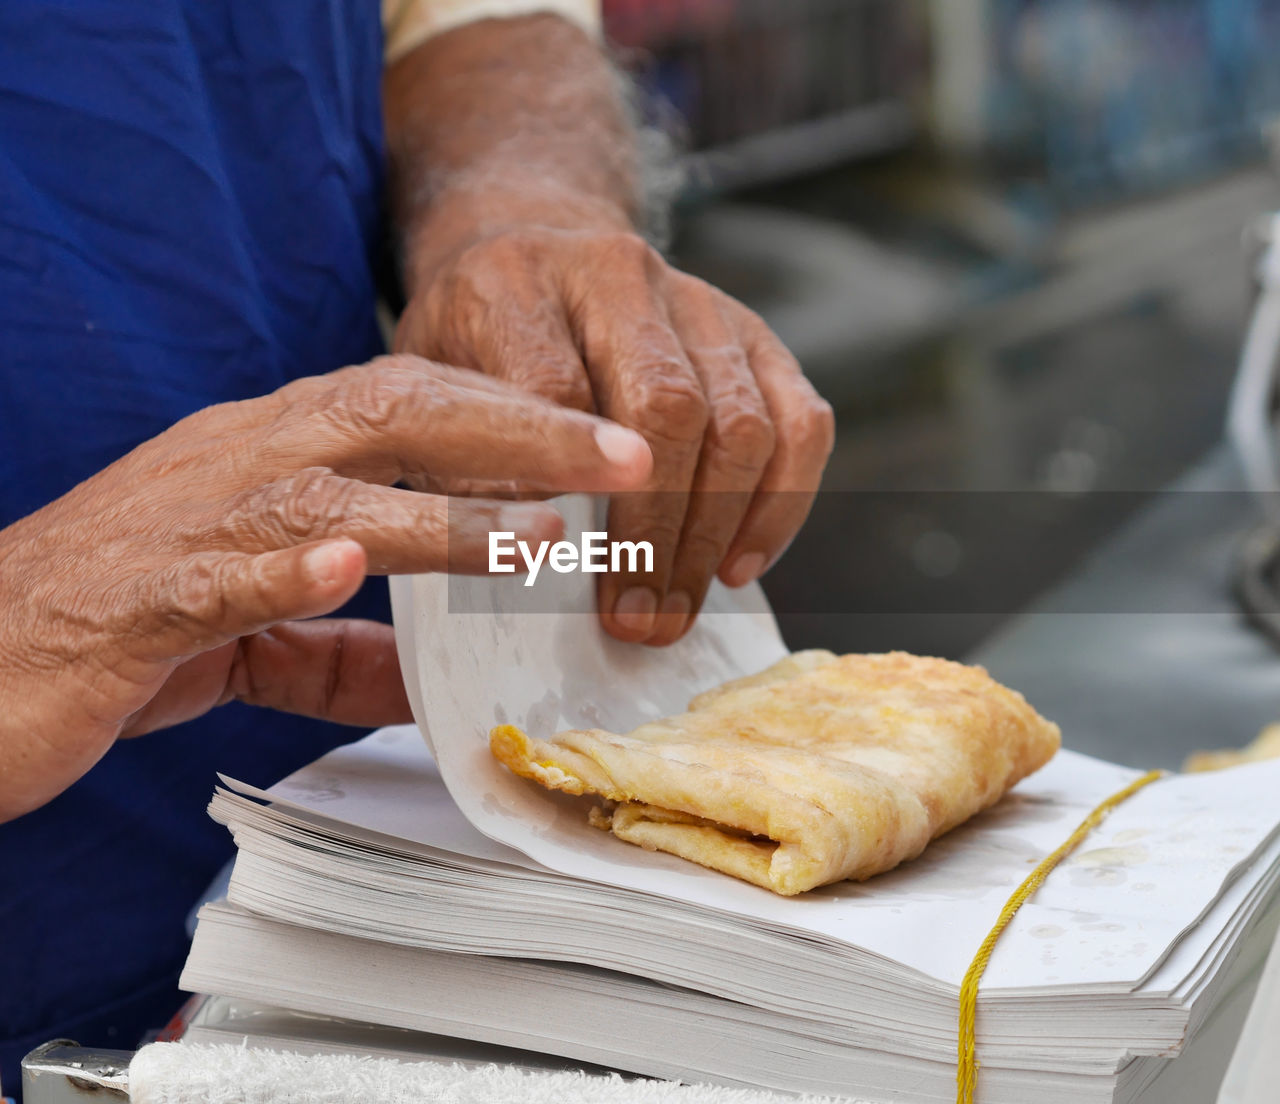 CLOSE-UP OF MAN WORKING WITH FOOD